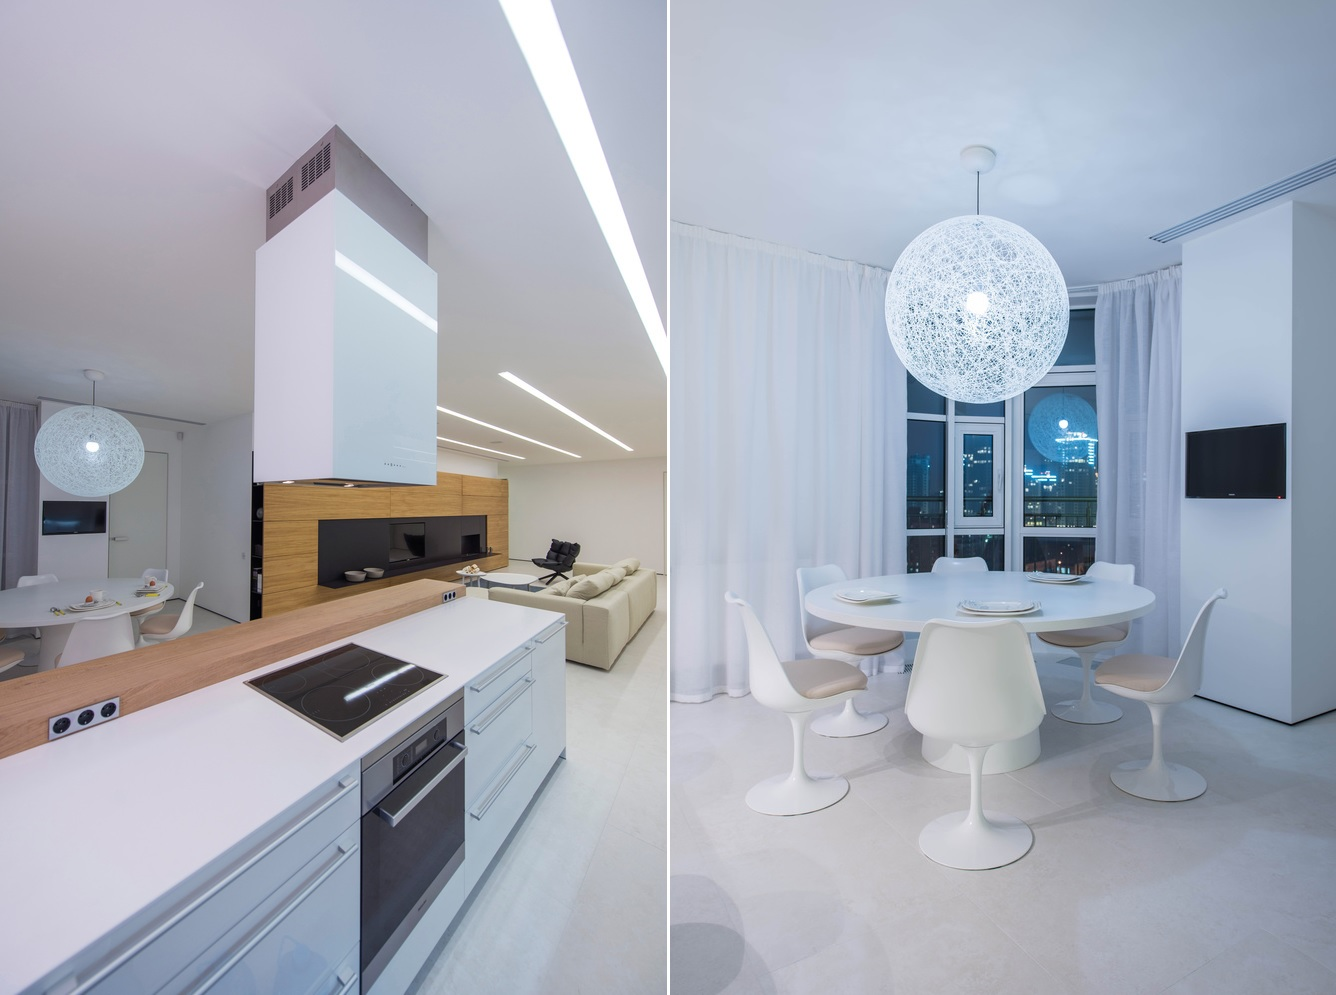 The kitchen and dining space occupy one section of the social area and their designs are